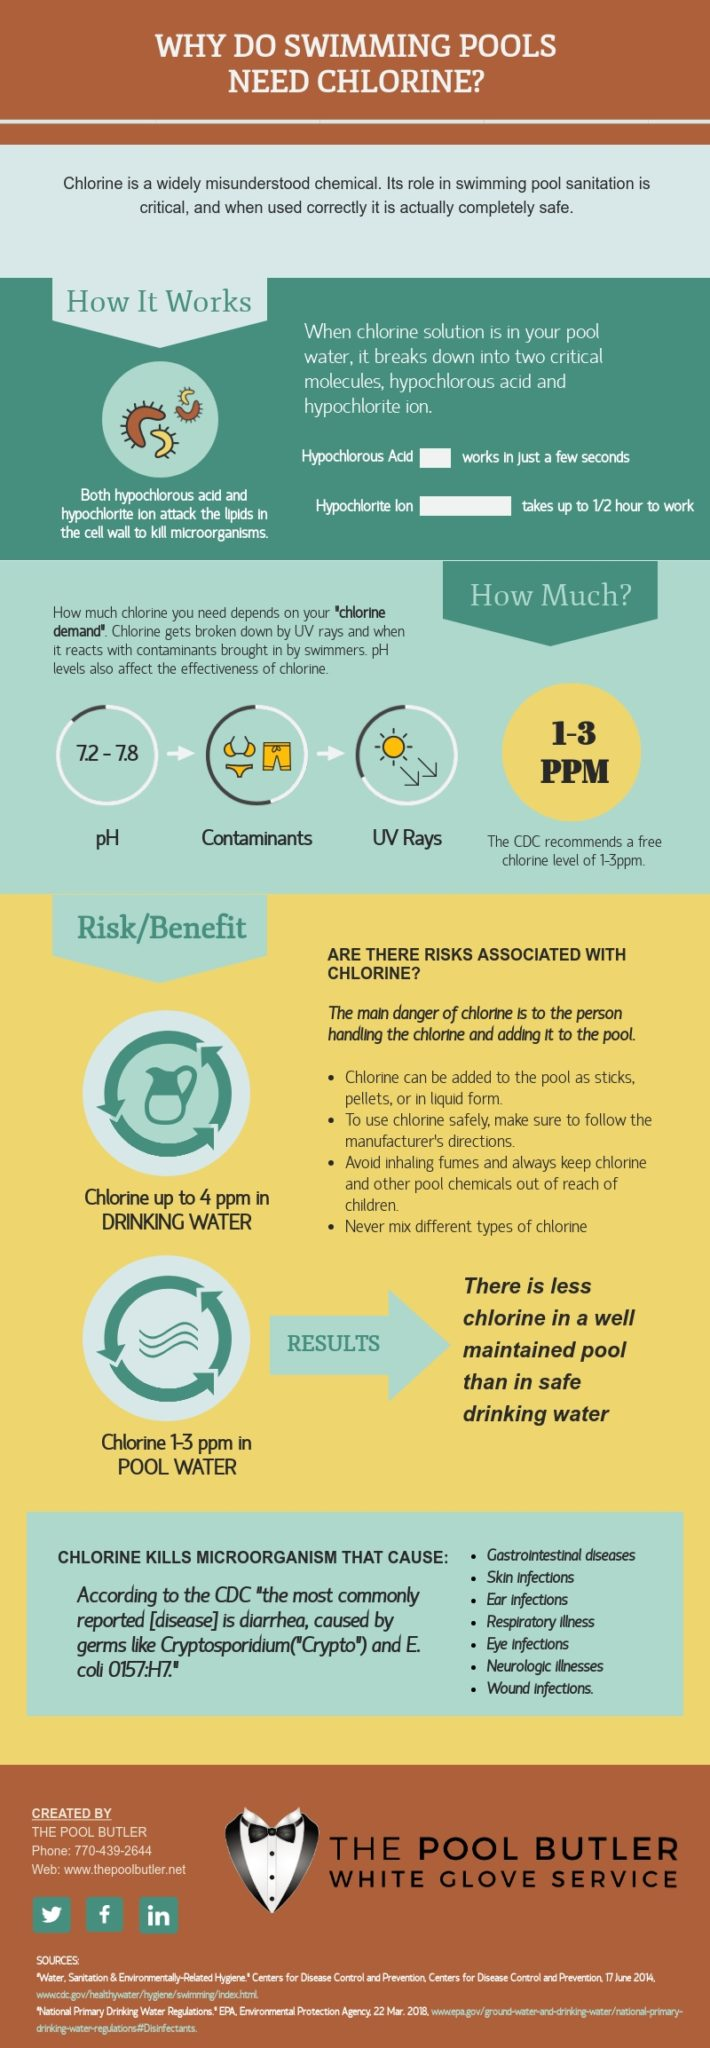 Why Do Swimming Pools Need Chlorine [infographic]